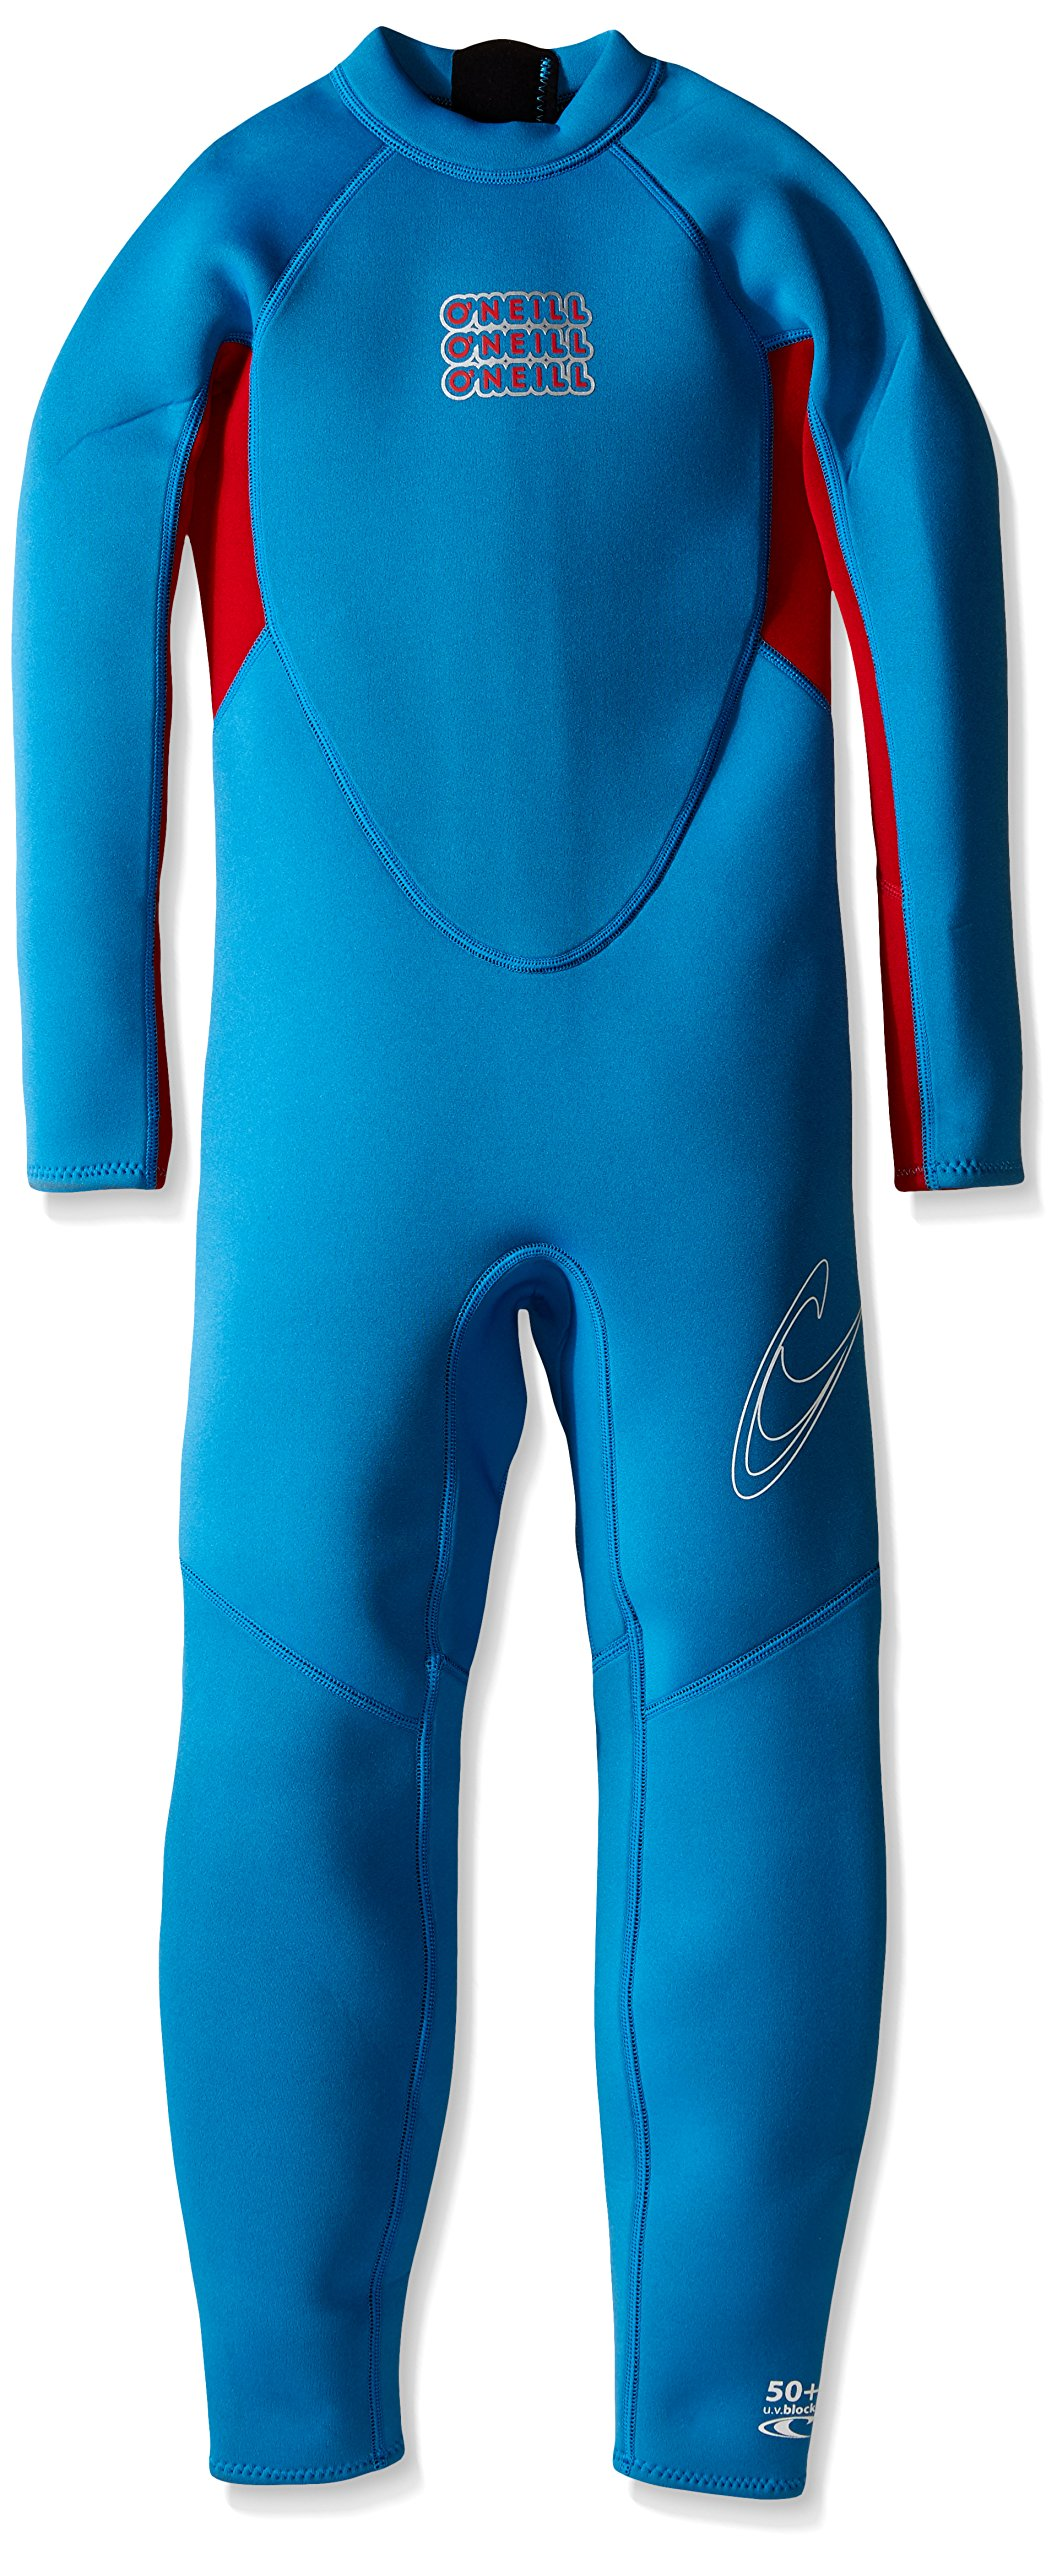 O'Neill Wetsuits Youth/Toddler Reactor Full Wetsuit, Brite Blue/Red, 2mm/Size 6